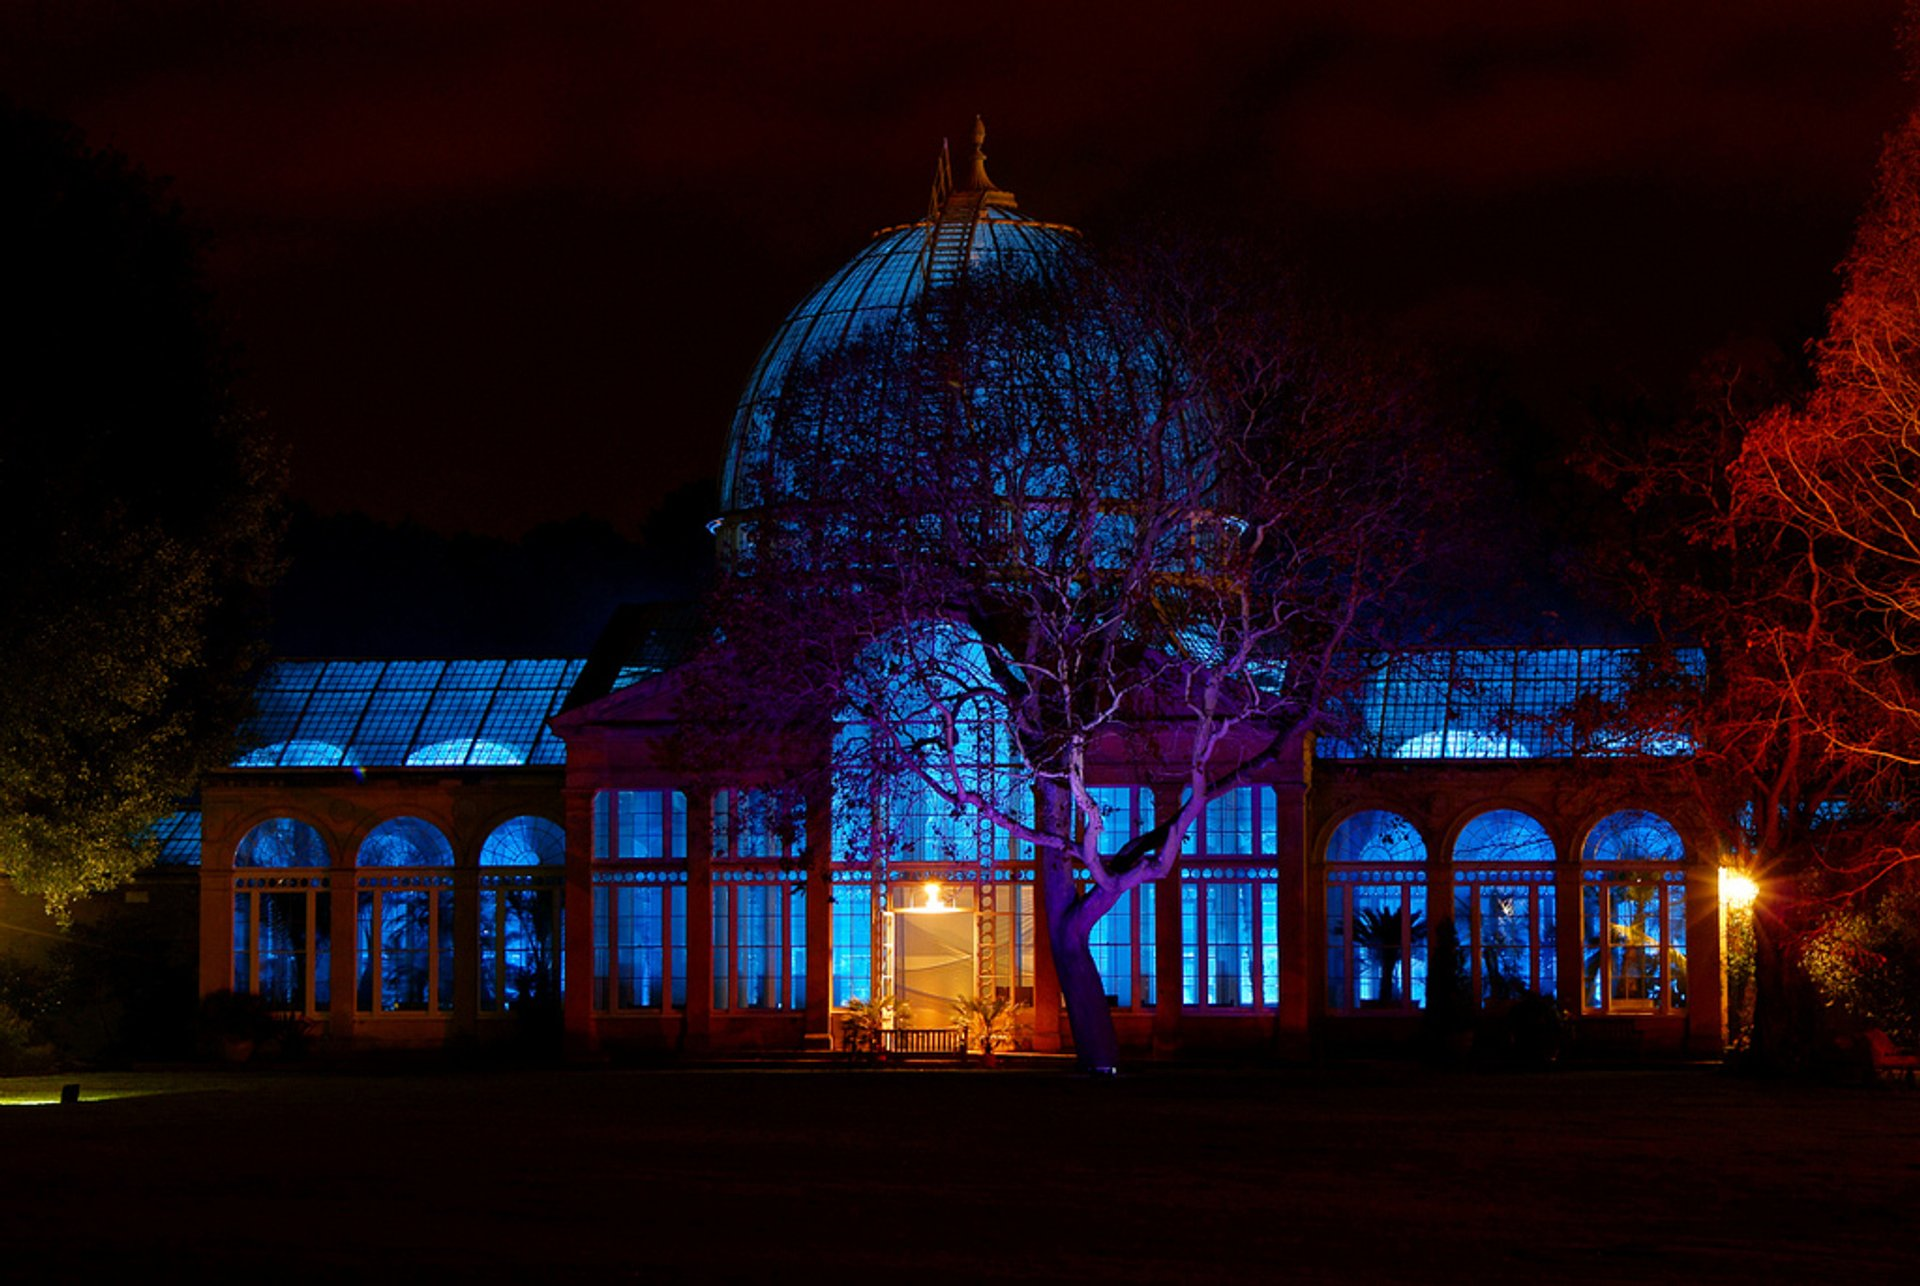 Best time to see Enchanted Woodland at Syon Park in London 2020